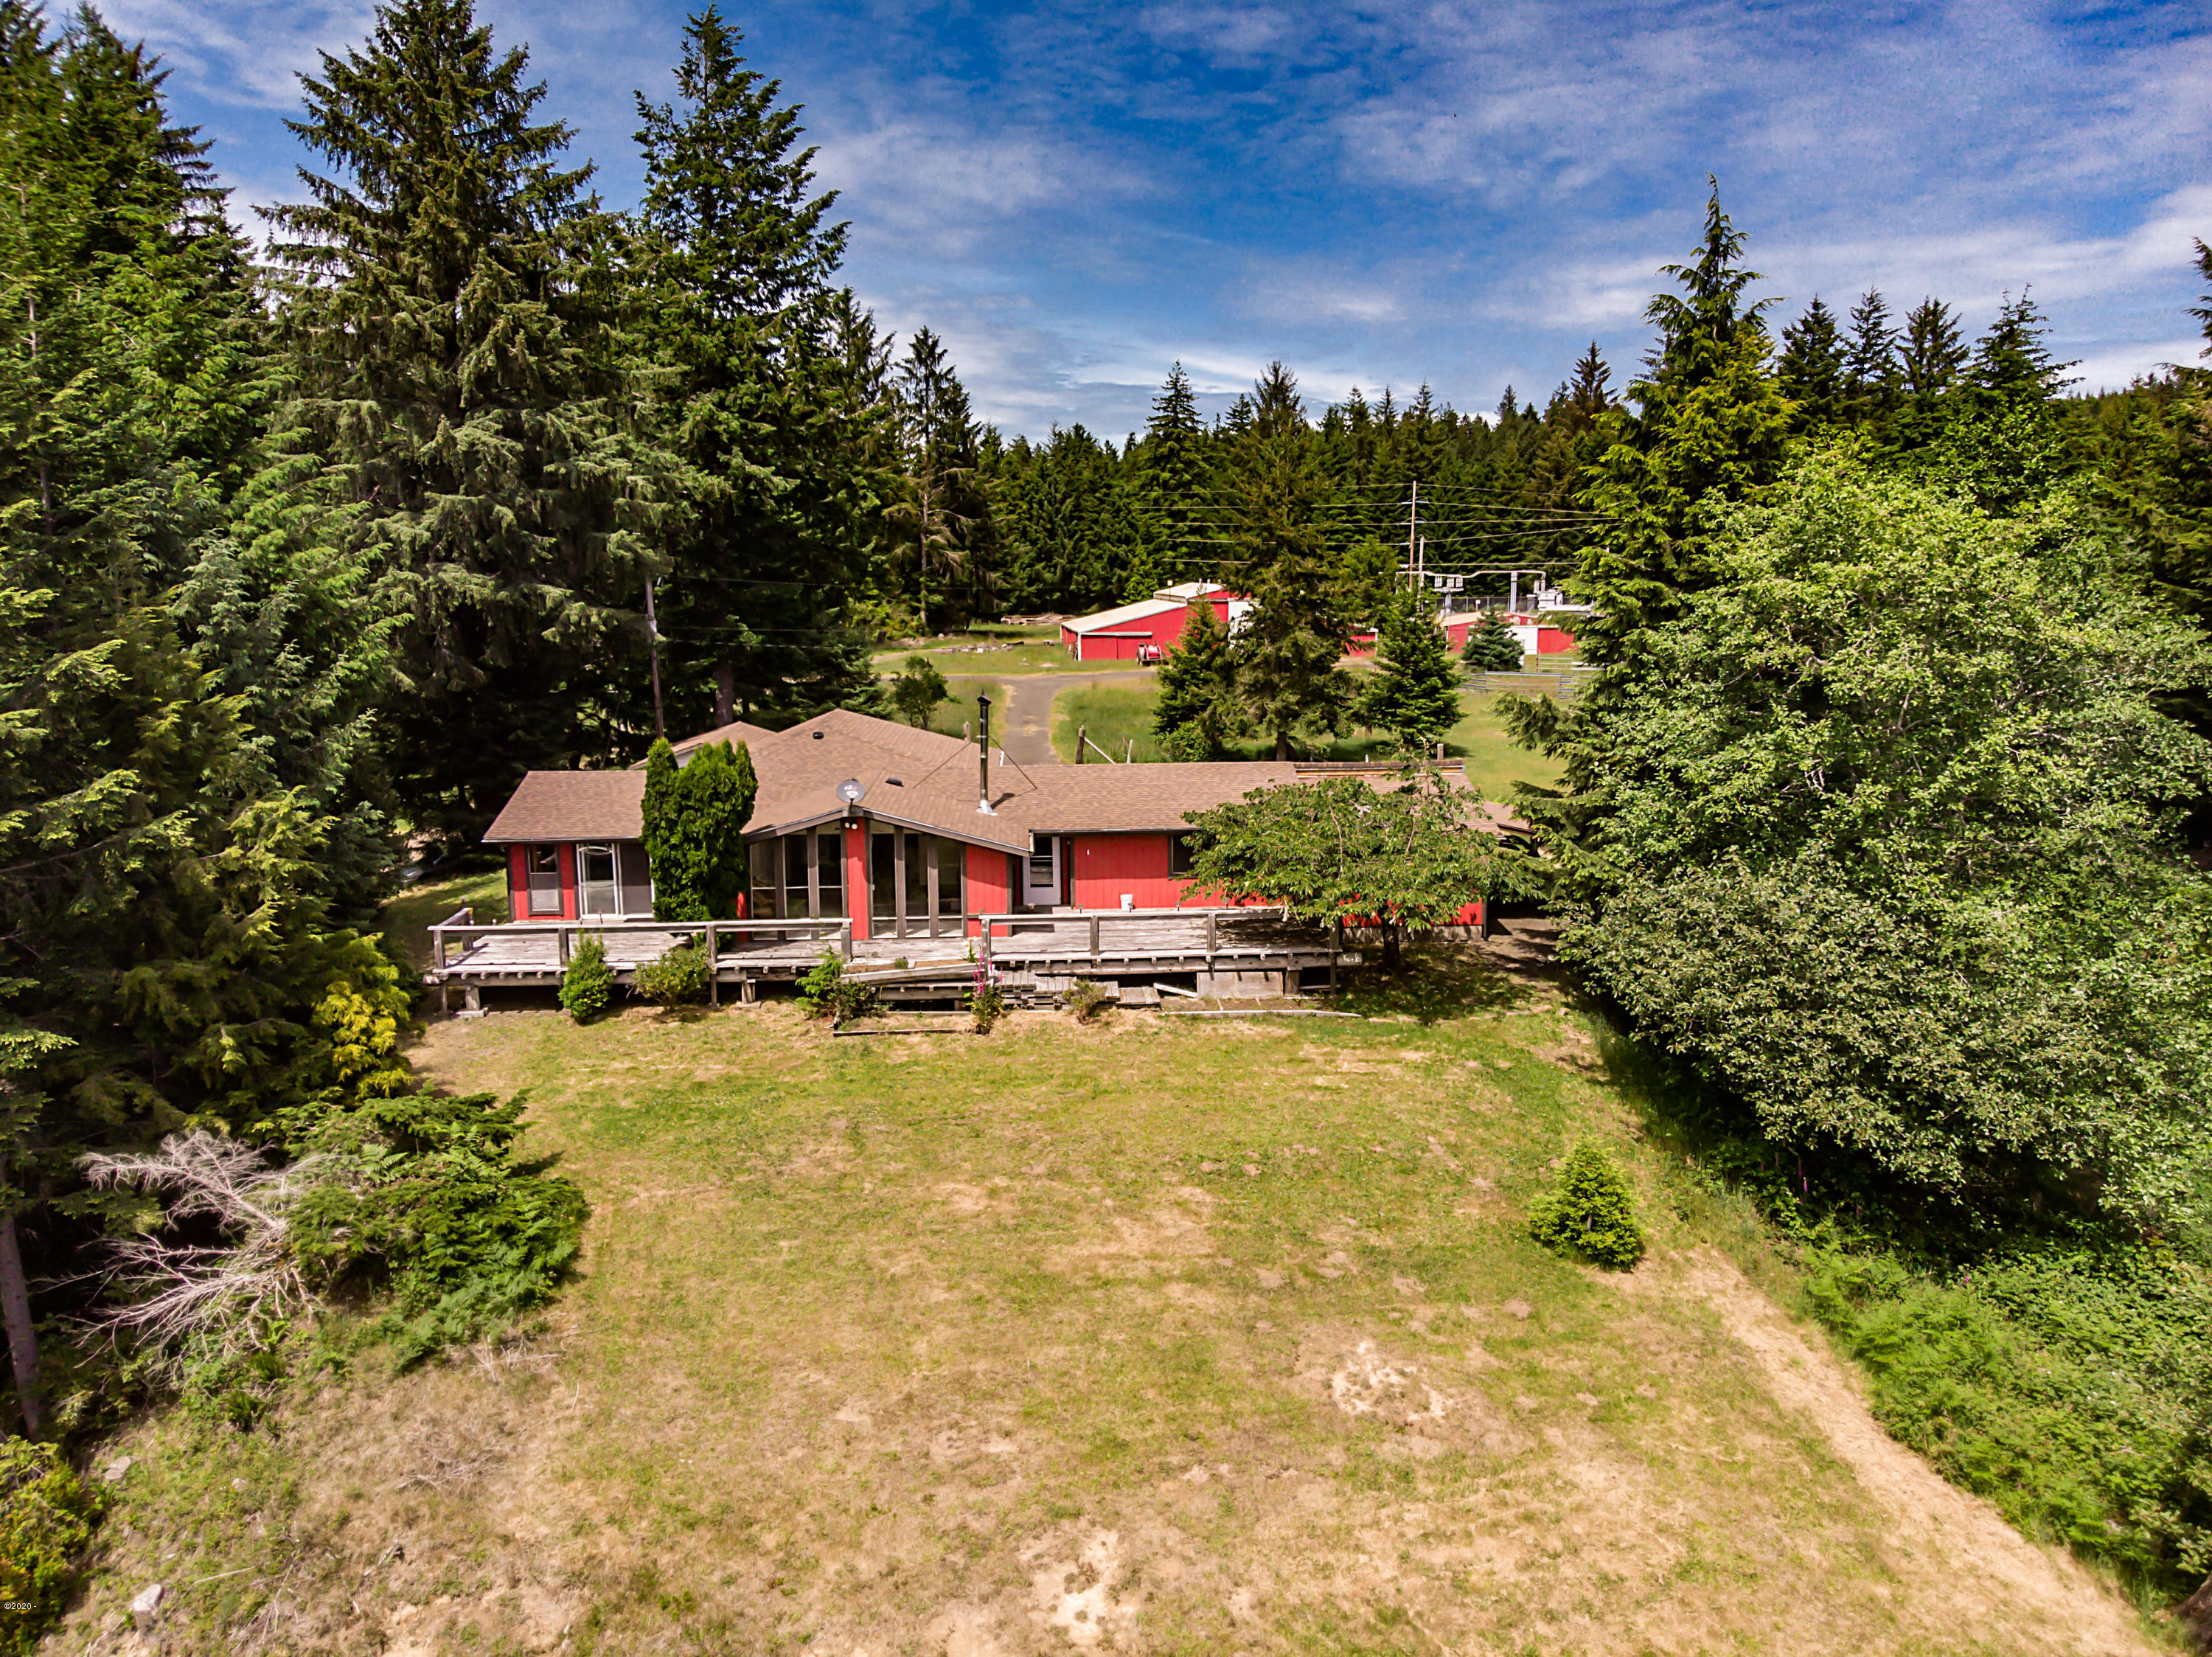 3021 N Bayview Rd, Waldport, OR 97394 - Drone view of main house